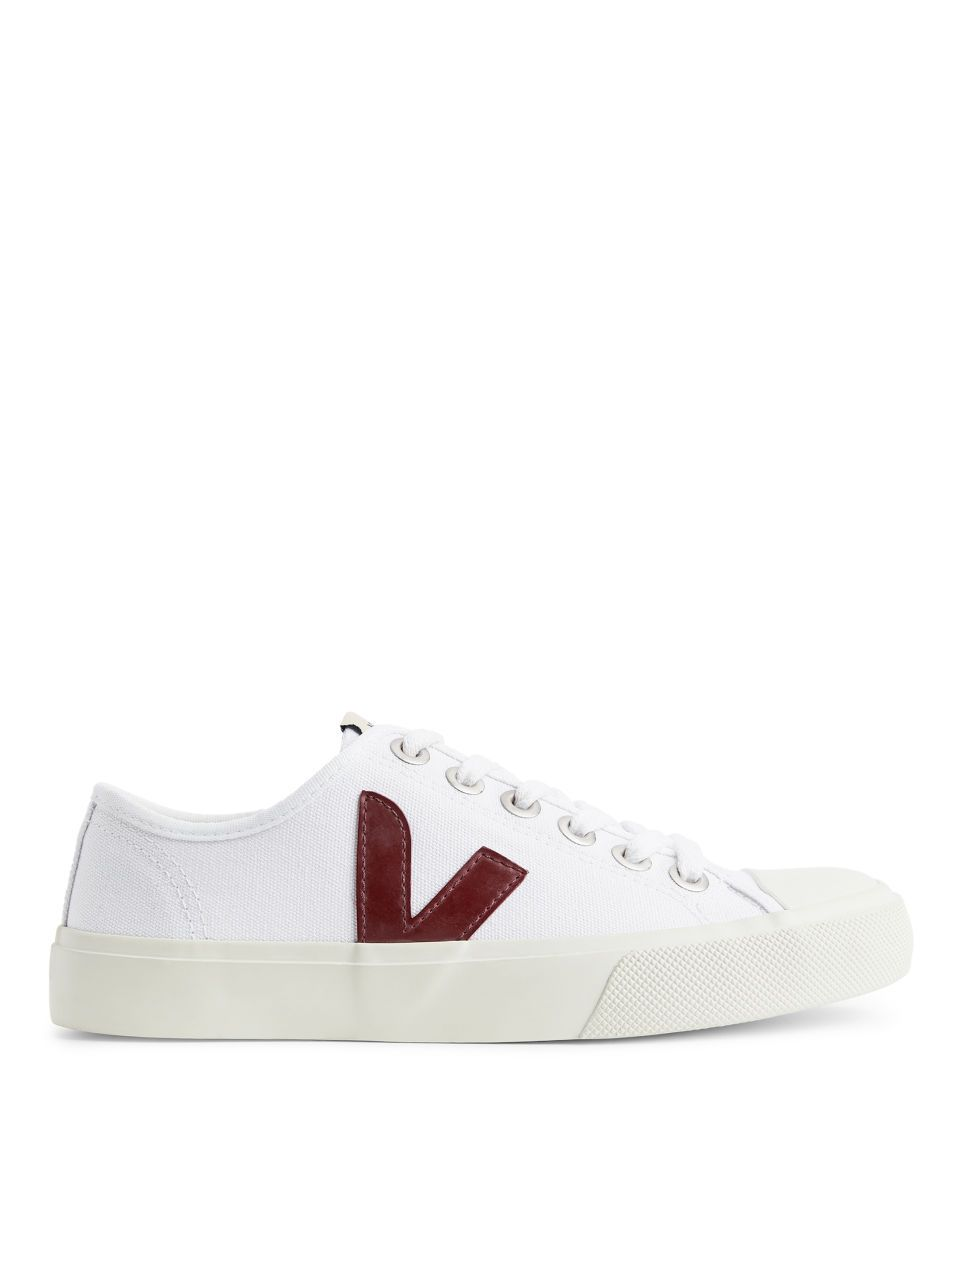 Veja Wata Trainers - White/Dusty Pink